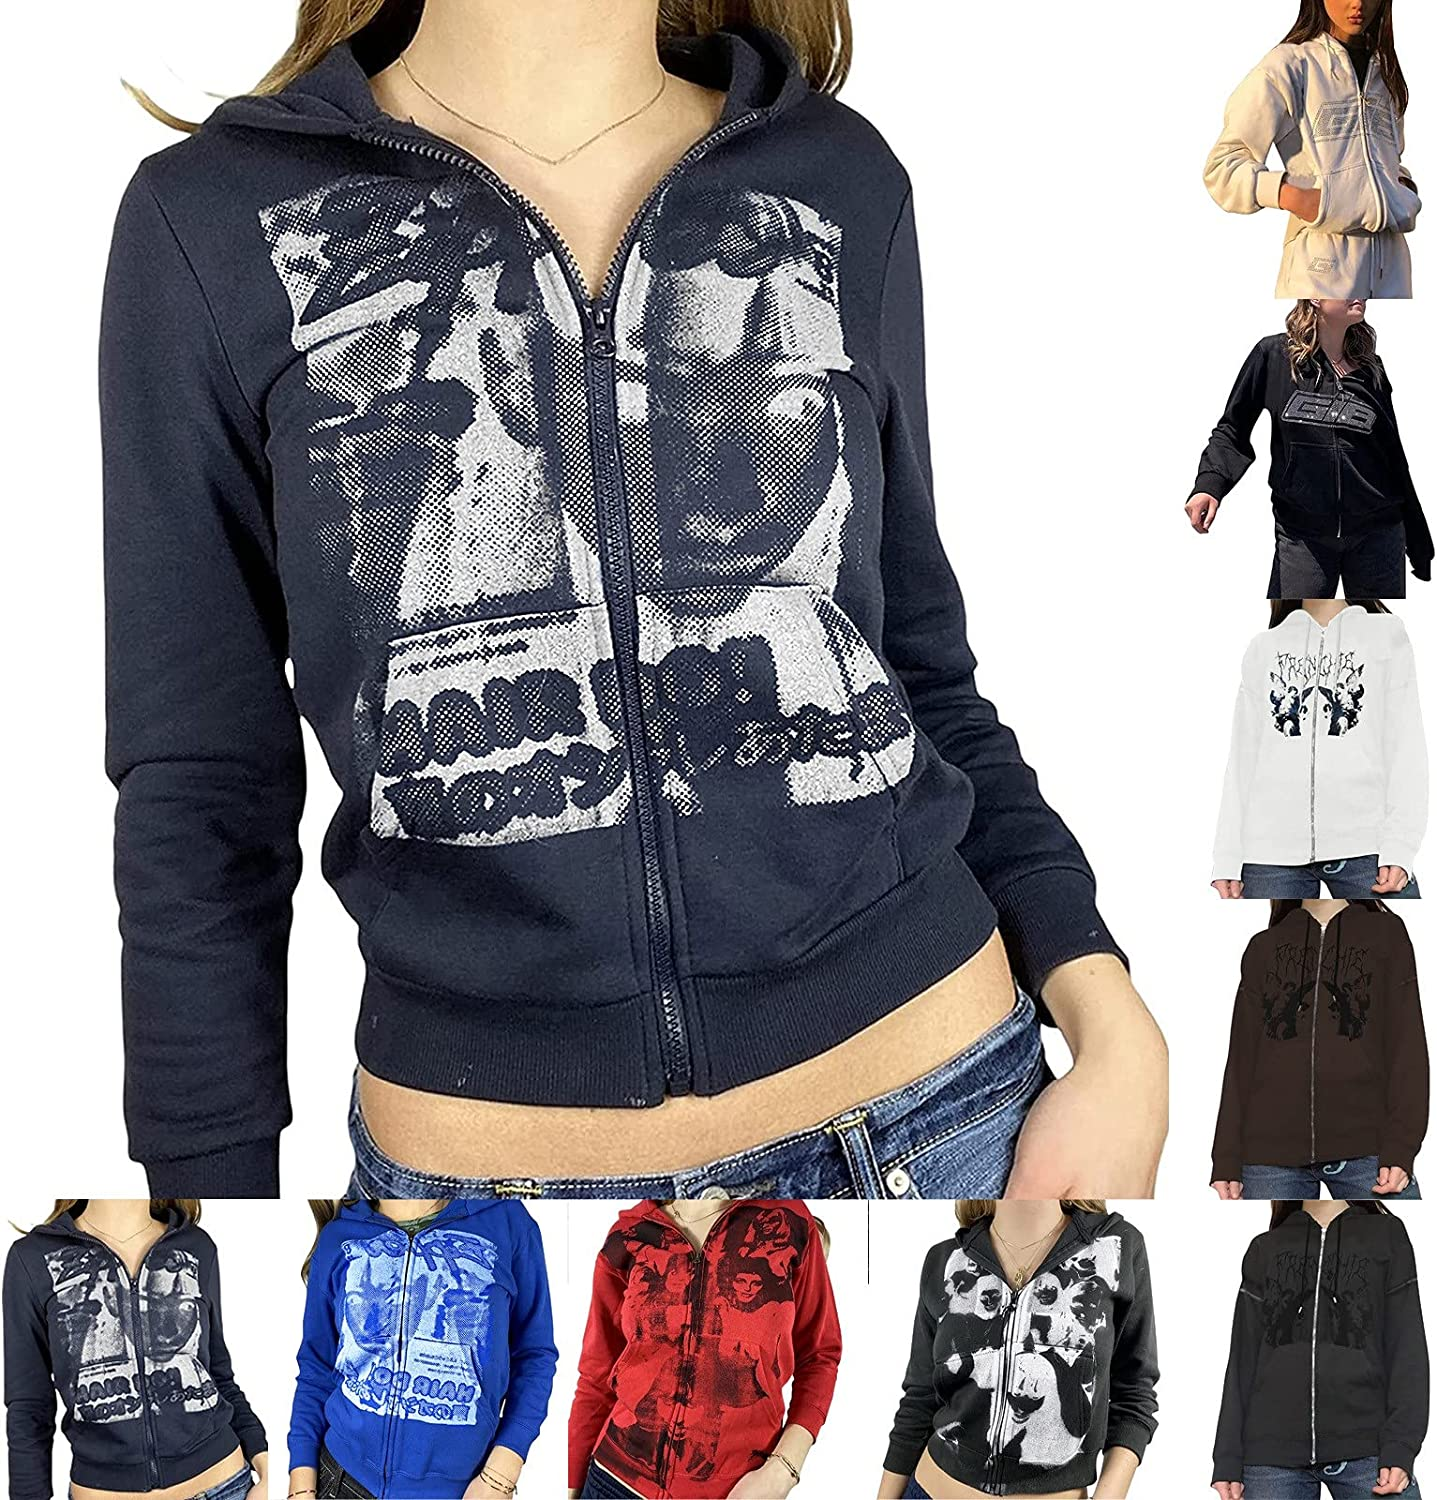 Womens Zipper Oversized Hoodies Solid Print Long Sleeve Hooded Sweatshirts with Pockets Autumn Winter Pullover Blouse